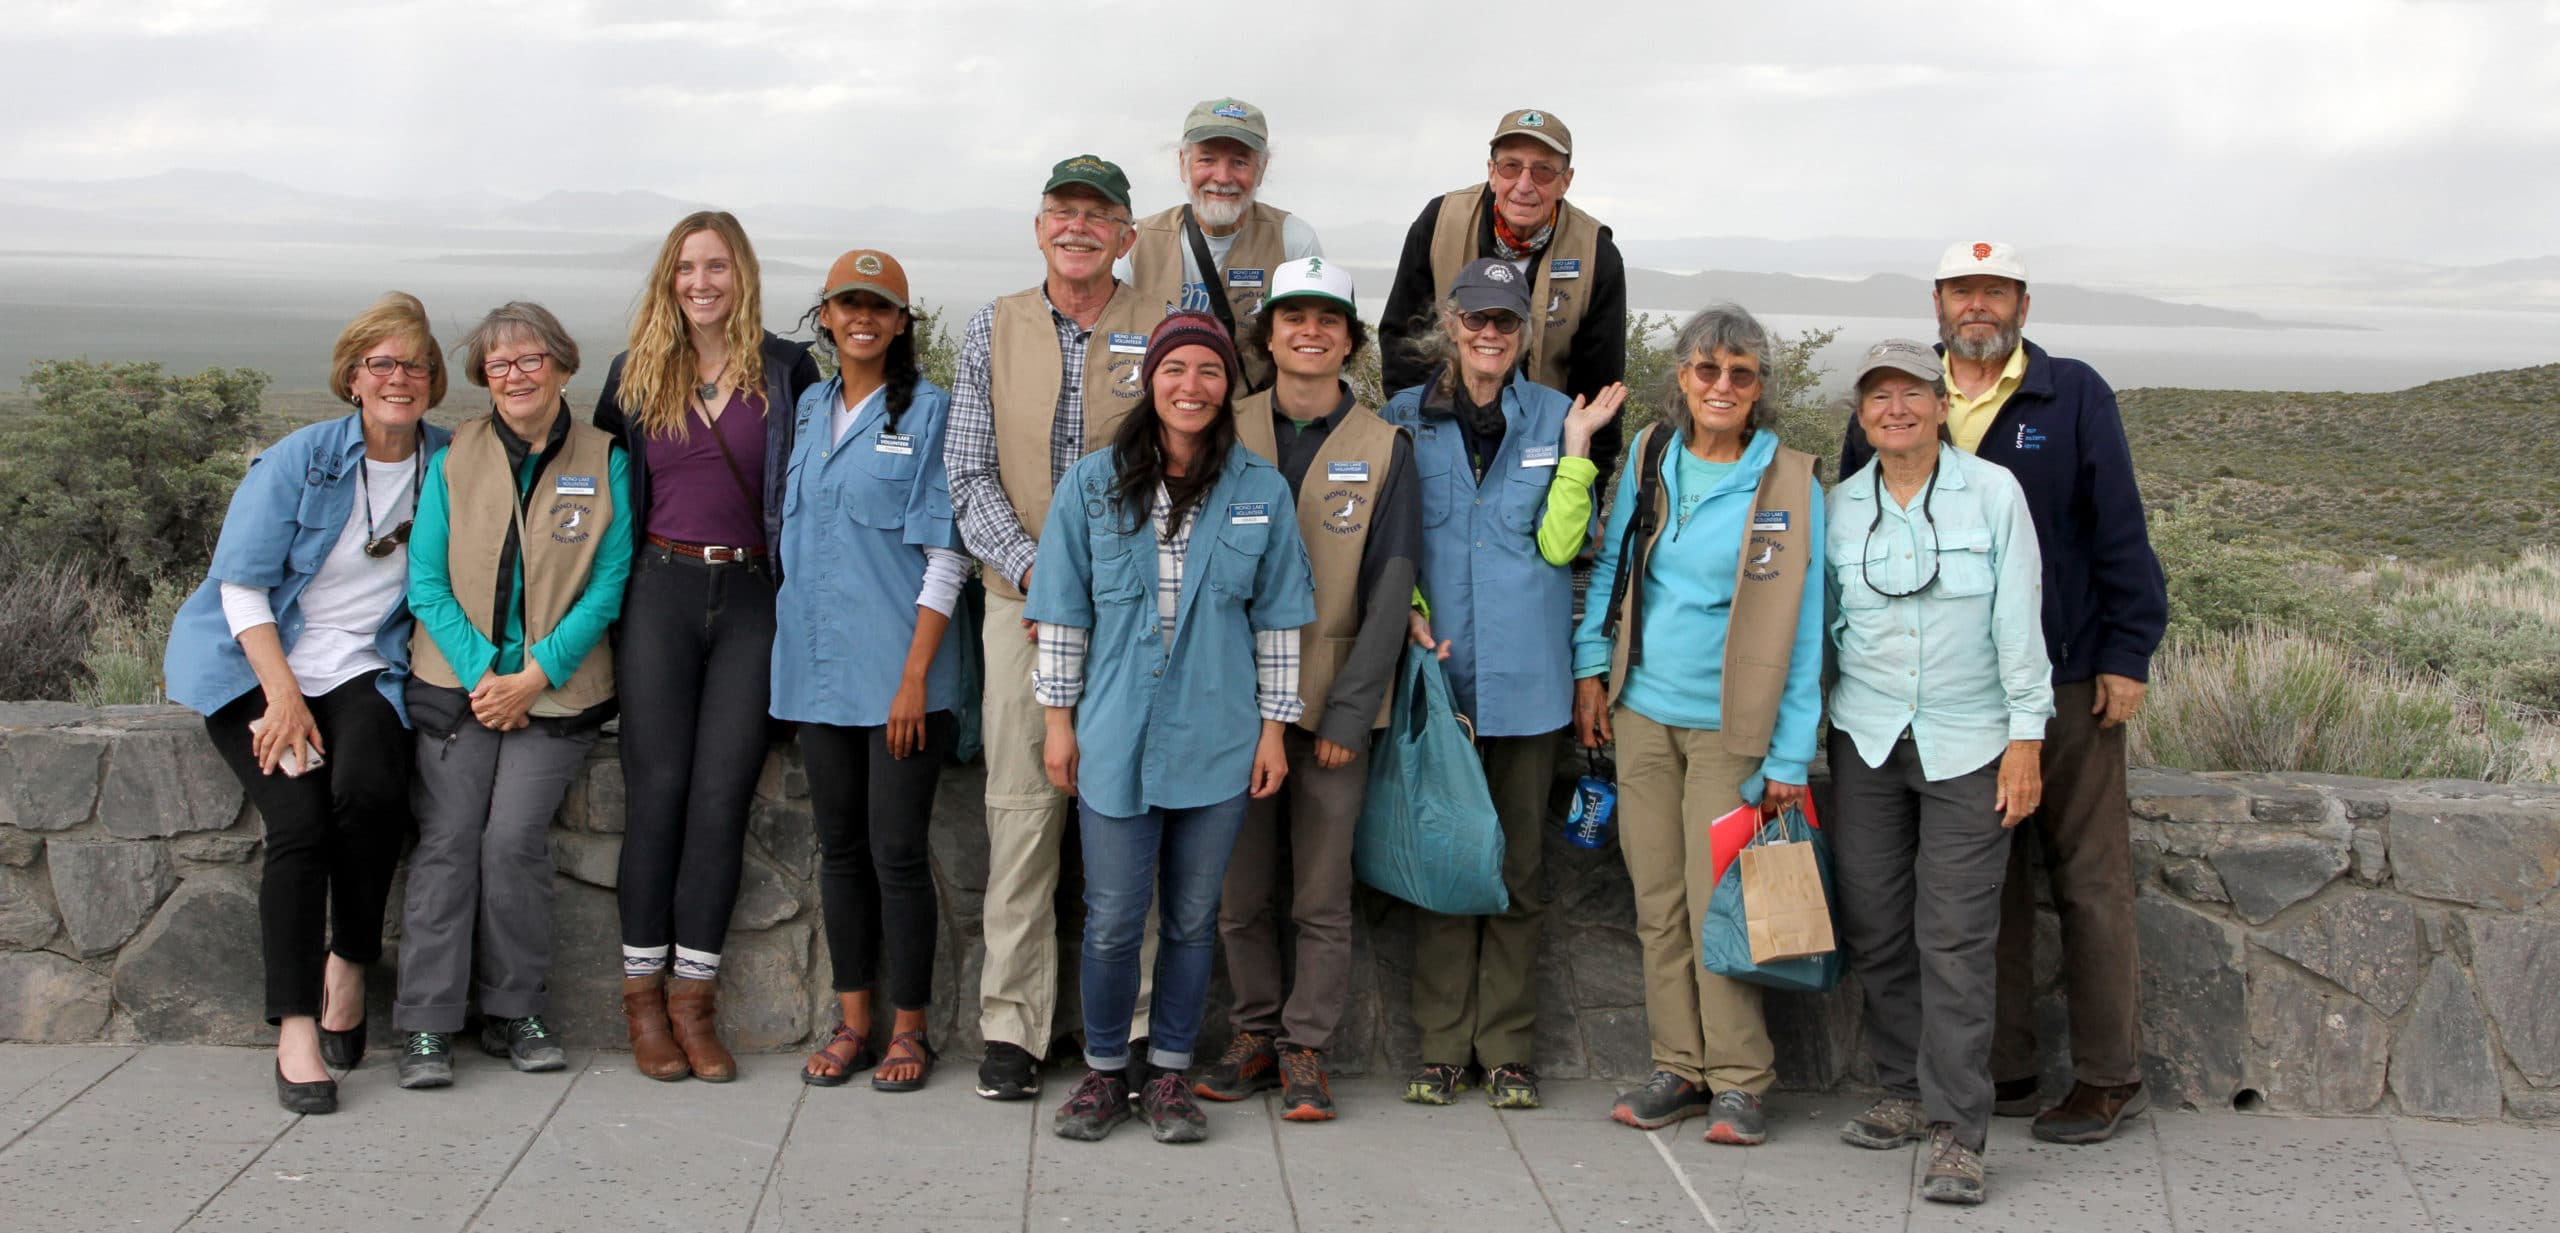 Thirteen people are standing together for a group photo smiling and looking very cheerful as they've just graduated to become official Mono Lake Volunteers.